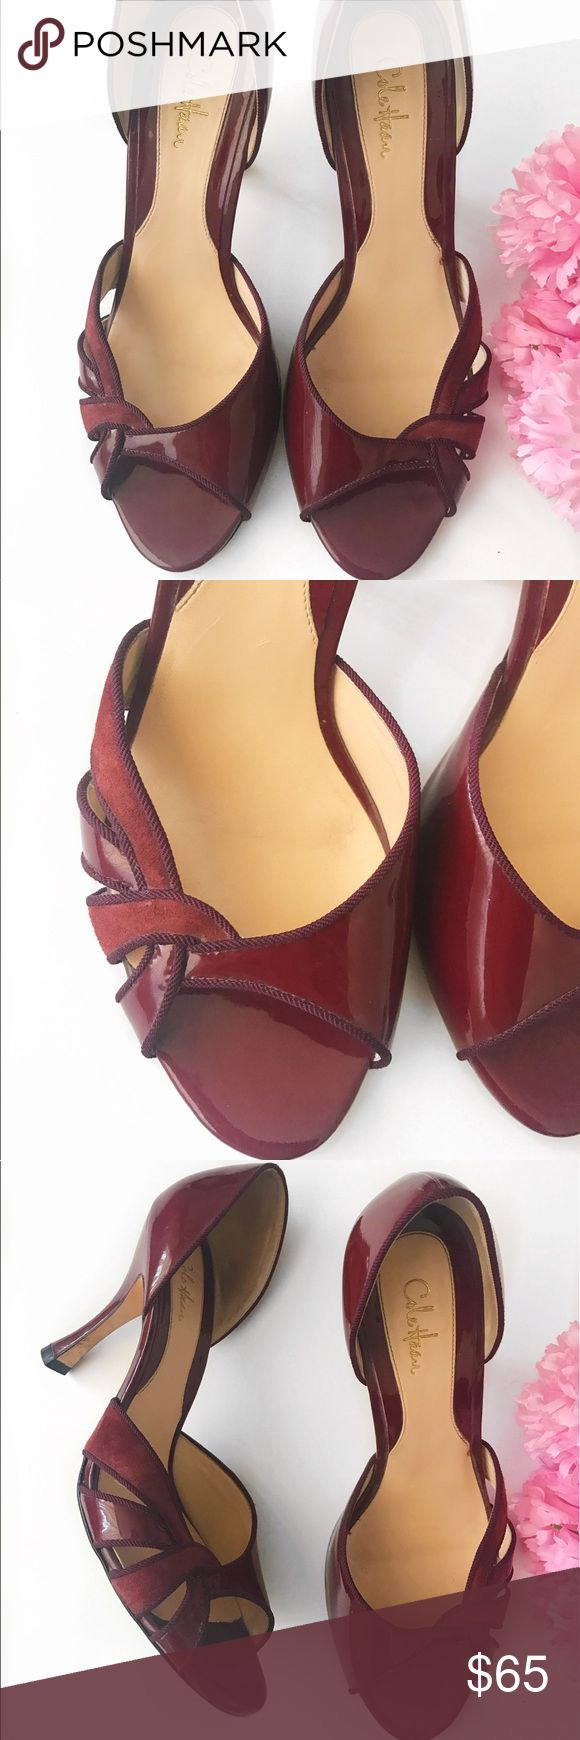 Cole Haan Red Peep Toe Heels Cole Haan Red Peep Toe Heels, good condition 🛍❤️ Cole Haan Shoes Heels